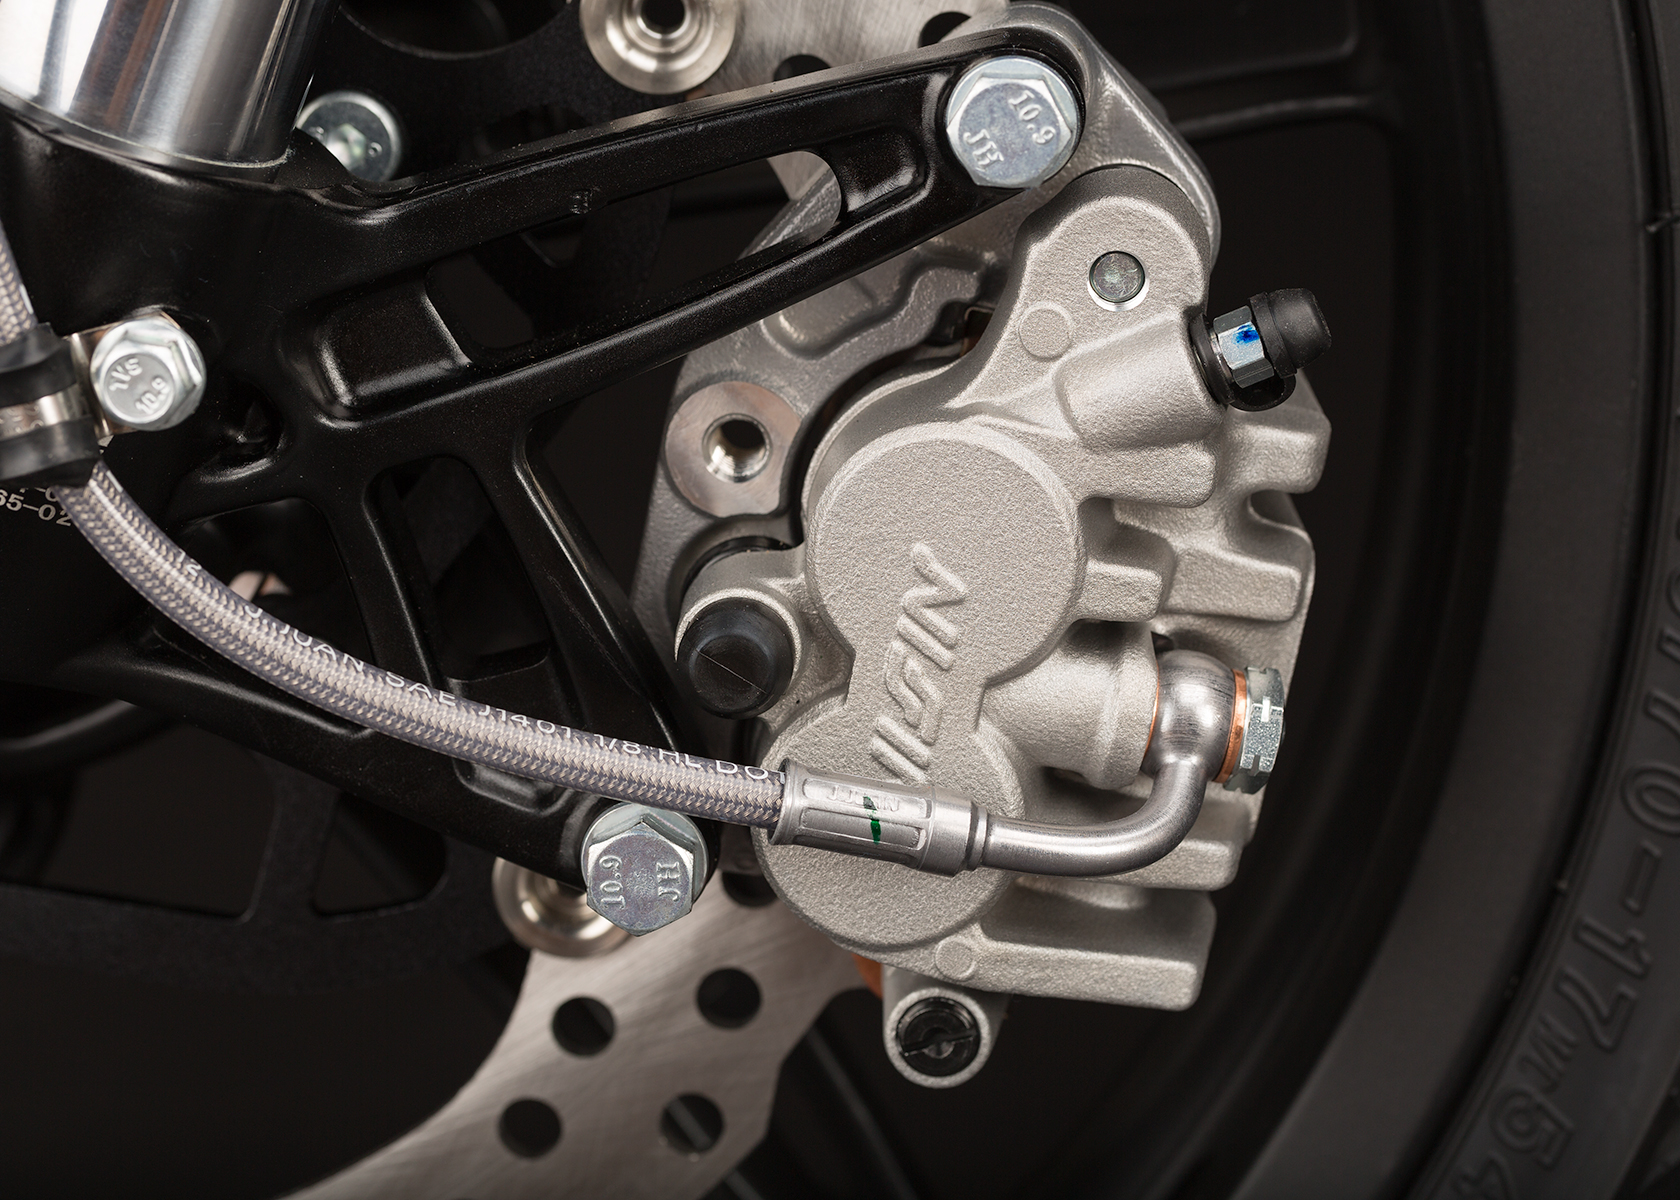 2014 Zero S Electric Motorcycle: Front brake